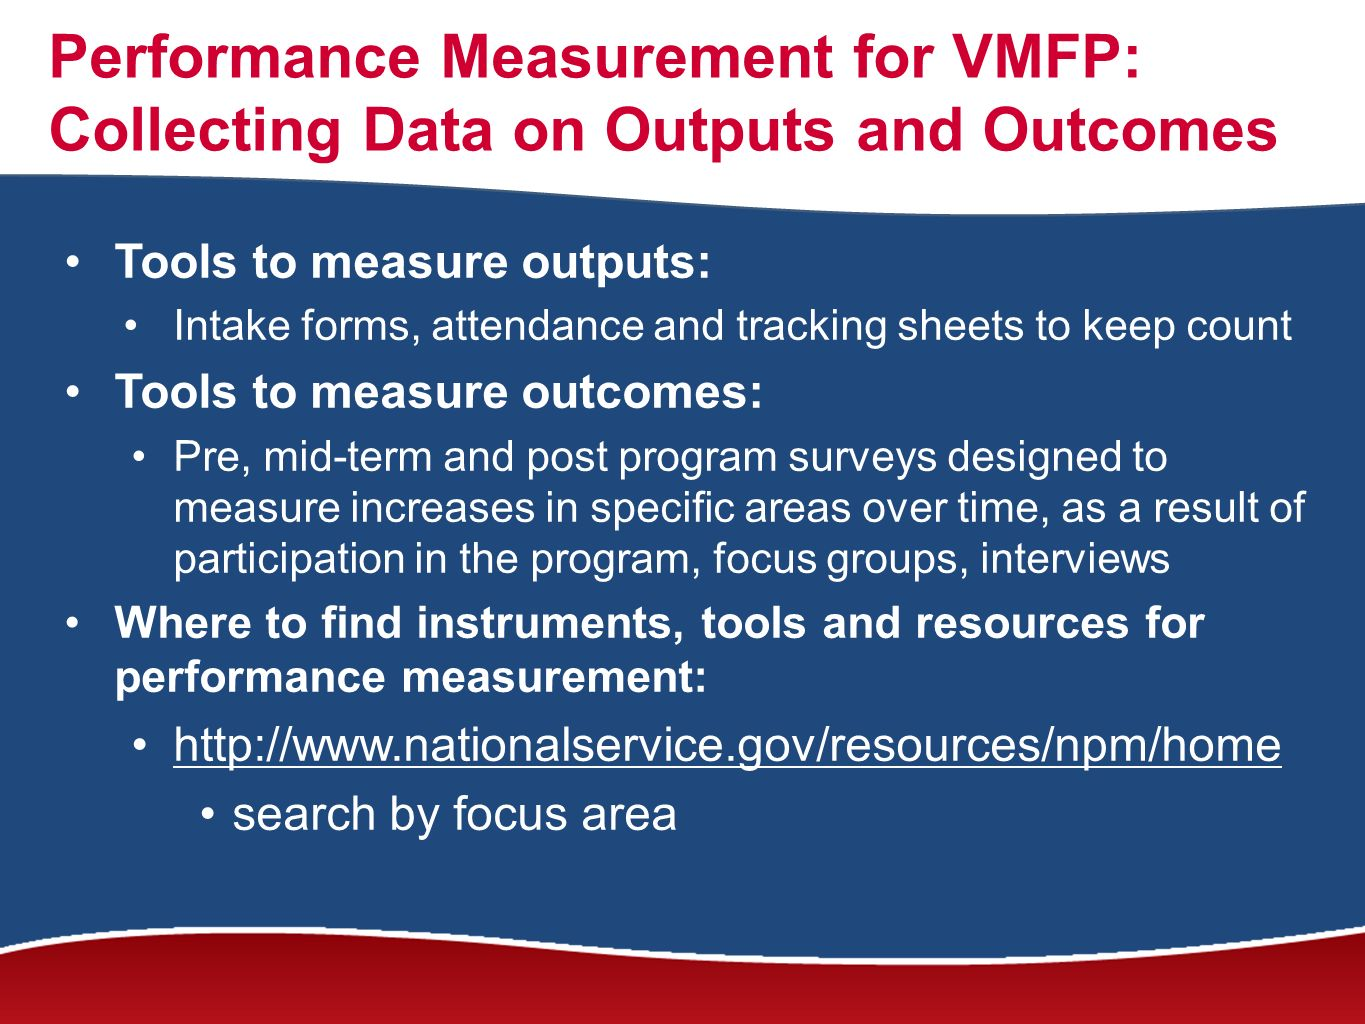 Performance Measurement for VMFP: Collecting Data on Outputs and Outcomes Tools to measure outputs: Intake forms, attendance and tracking sheets to keep count Tools to measure outcomes: Pre, mid-term and post program surveys designed to measure increases in specific areas over time, as a result of participation in the program, focus groups, interviews Where to find instruments, tools and resources for performance measurement: http://www.nationalservice.gov/resources/npm/home search by focus area